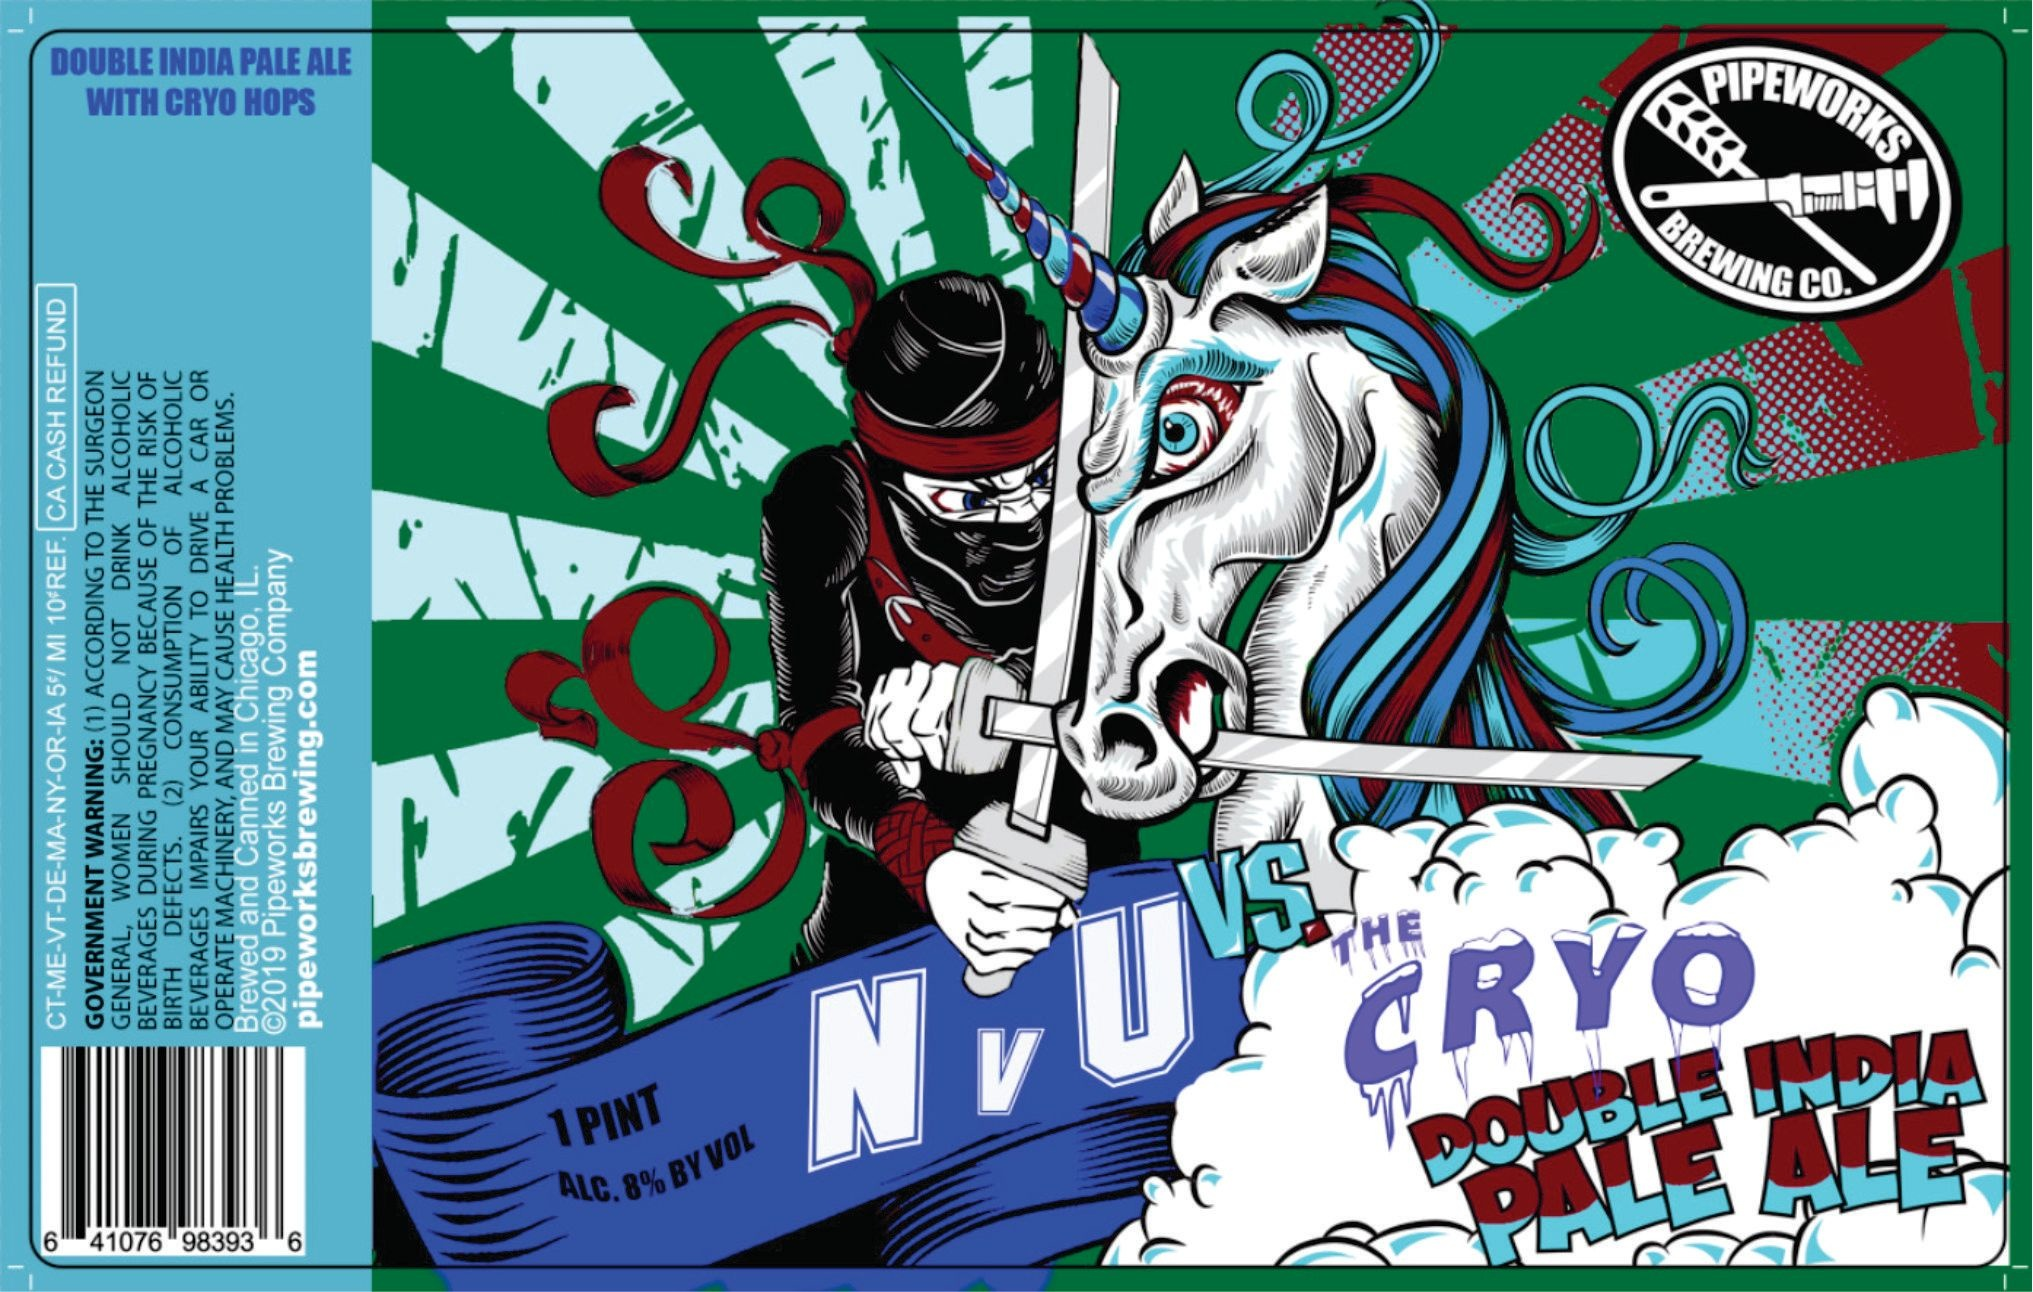 Pipeworks PIPEWORKS BREWING NINJA VS UNICORN CRYO DOUBLE IPA 4 PK CANS